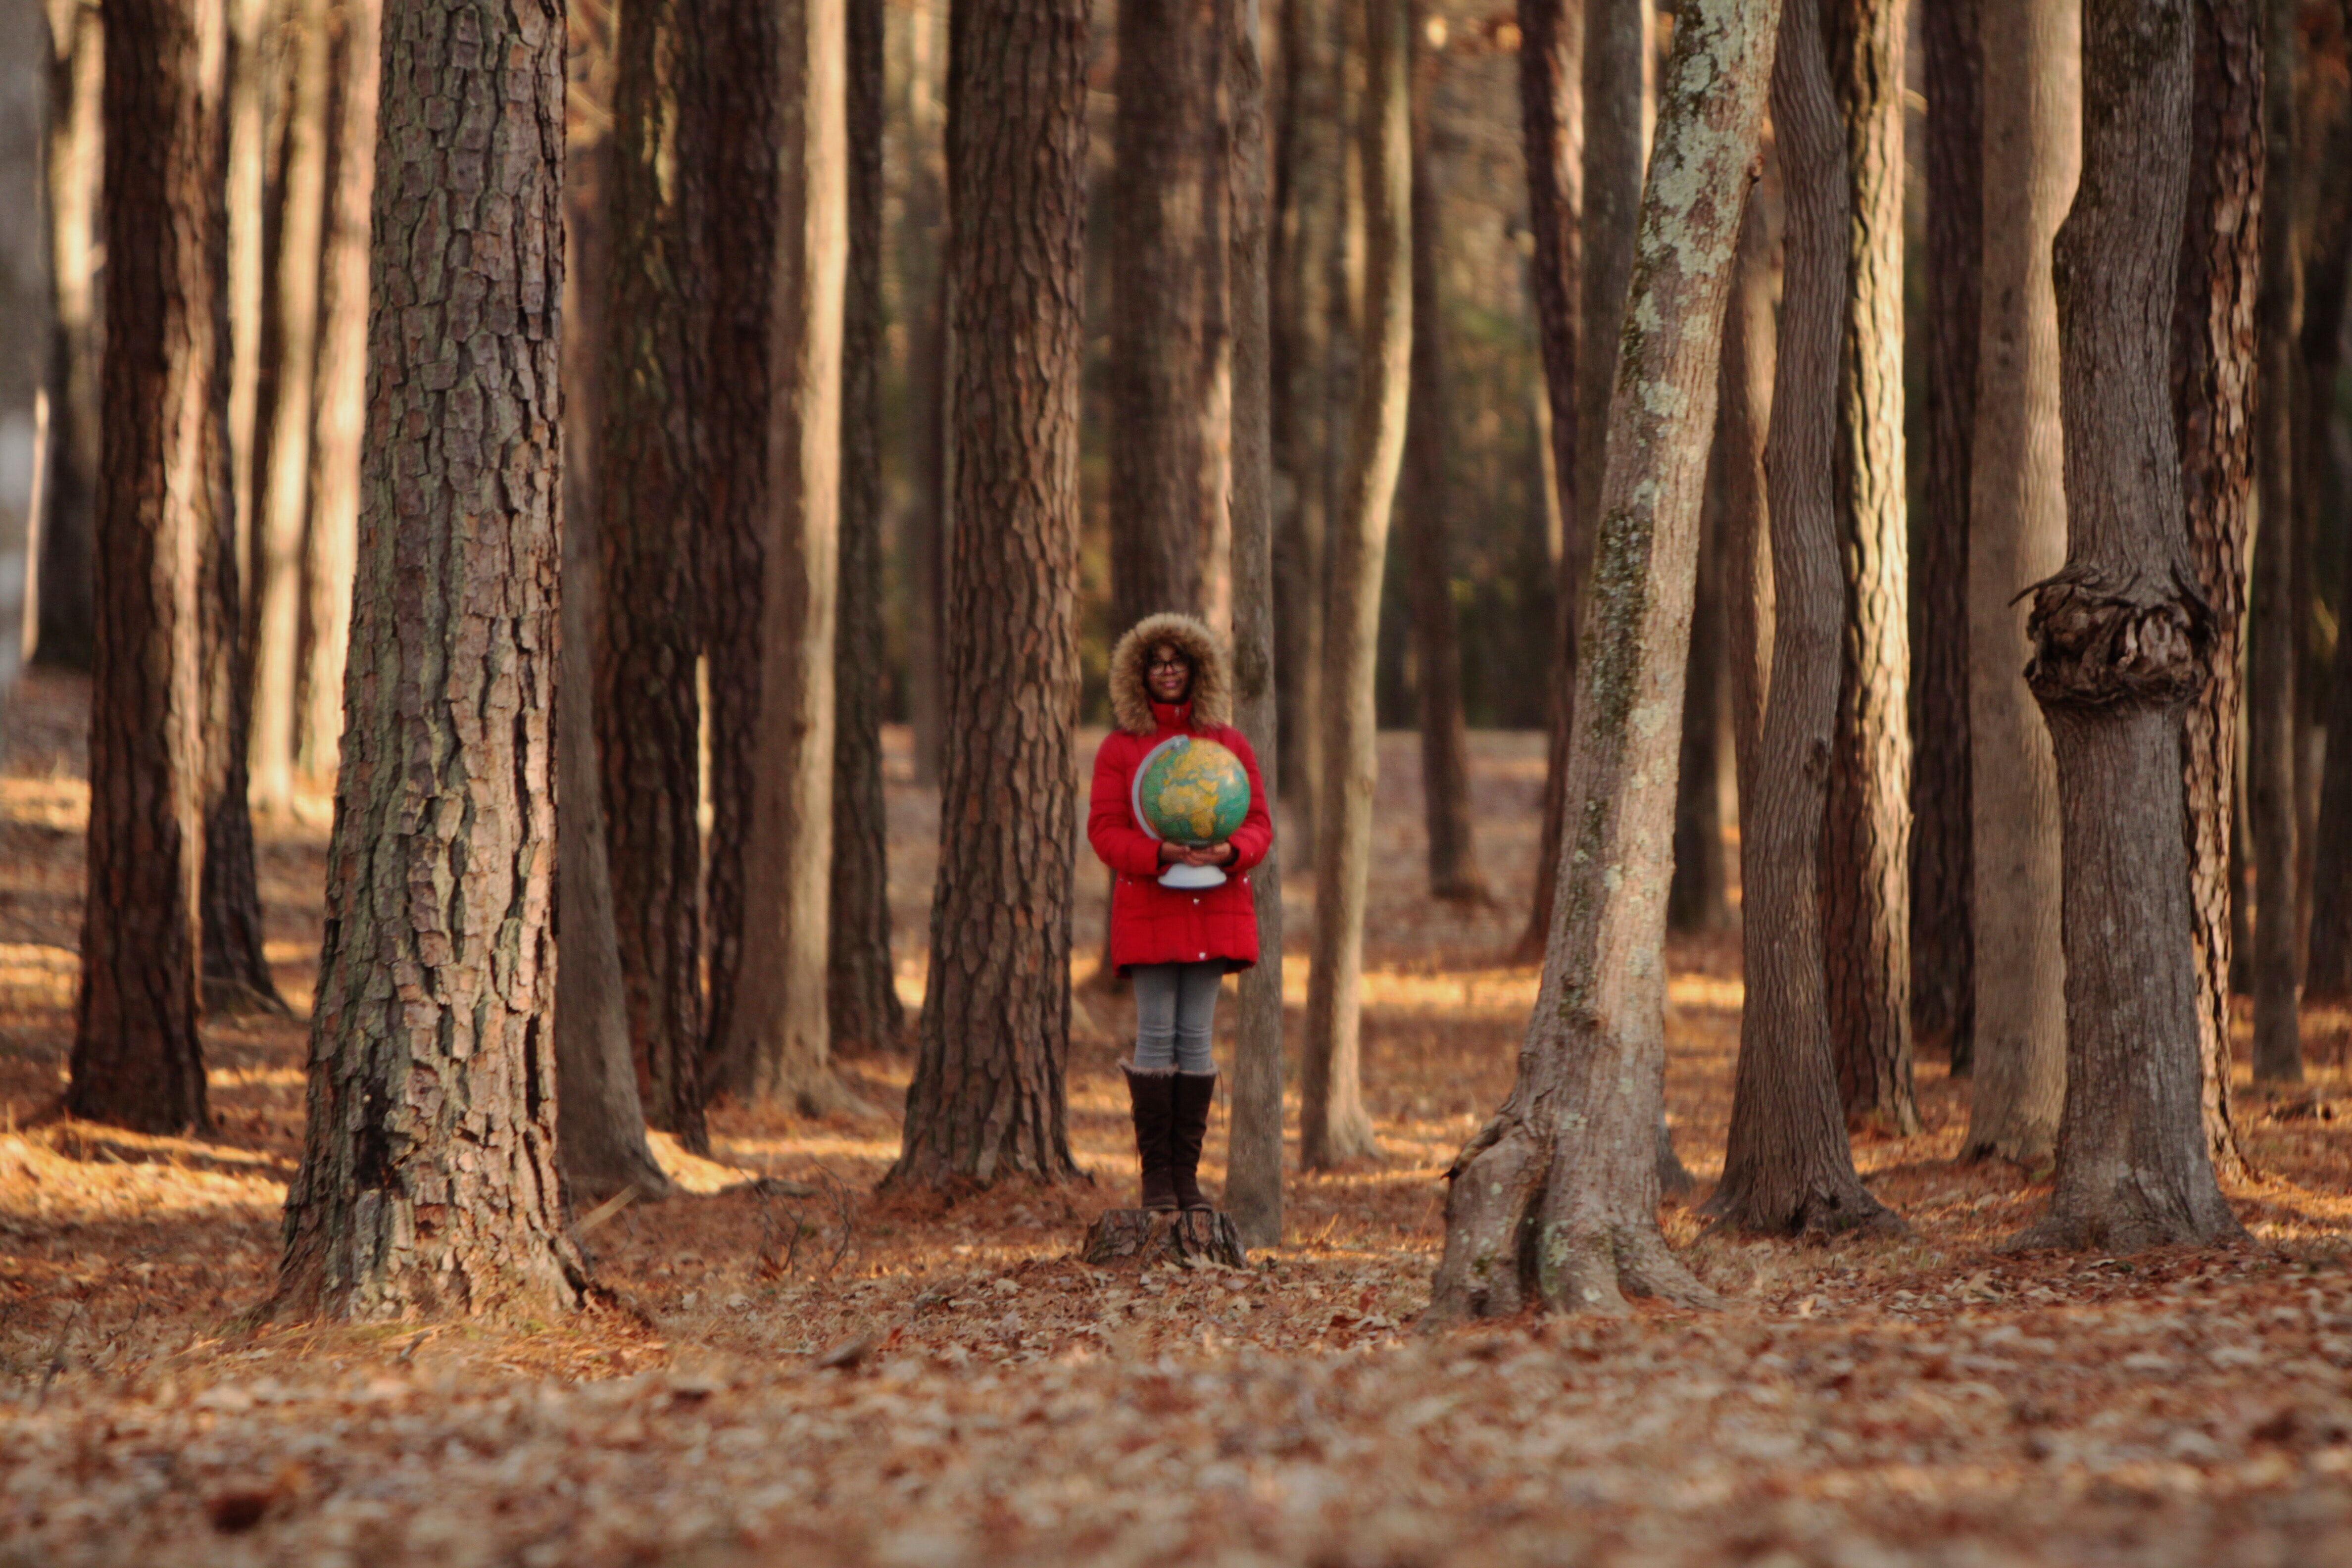 Woman wearing red coat standing in a forest holding a globe